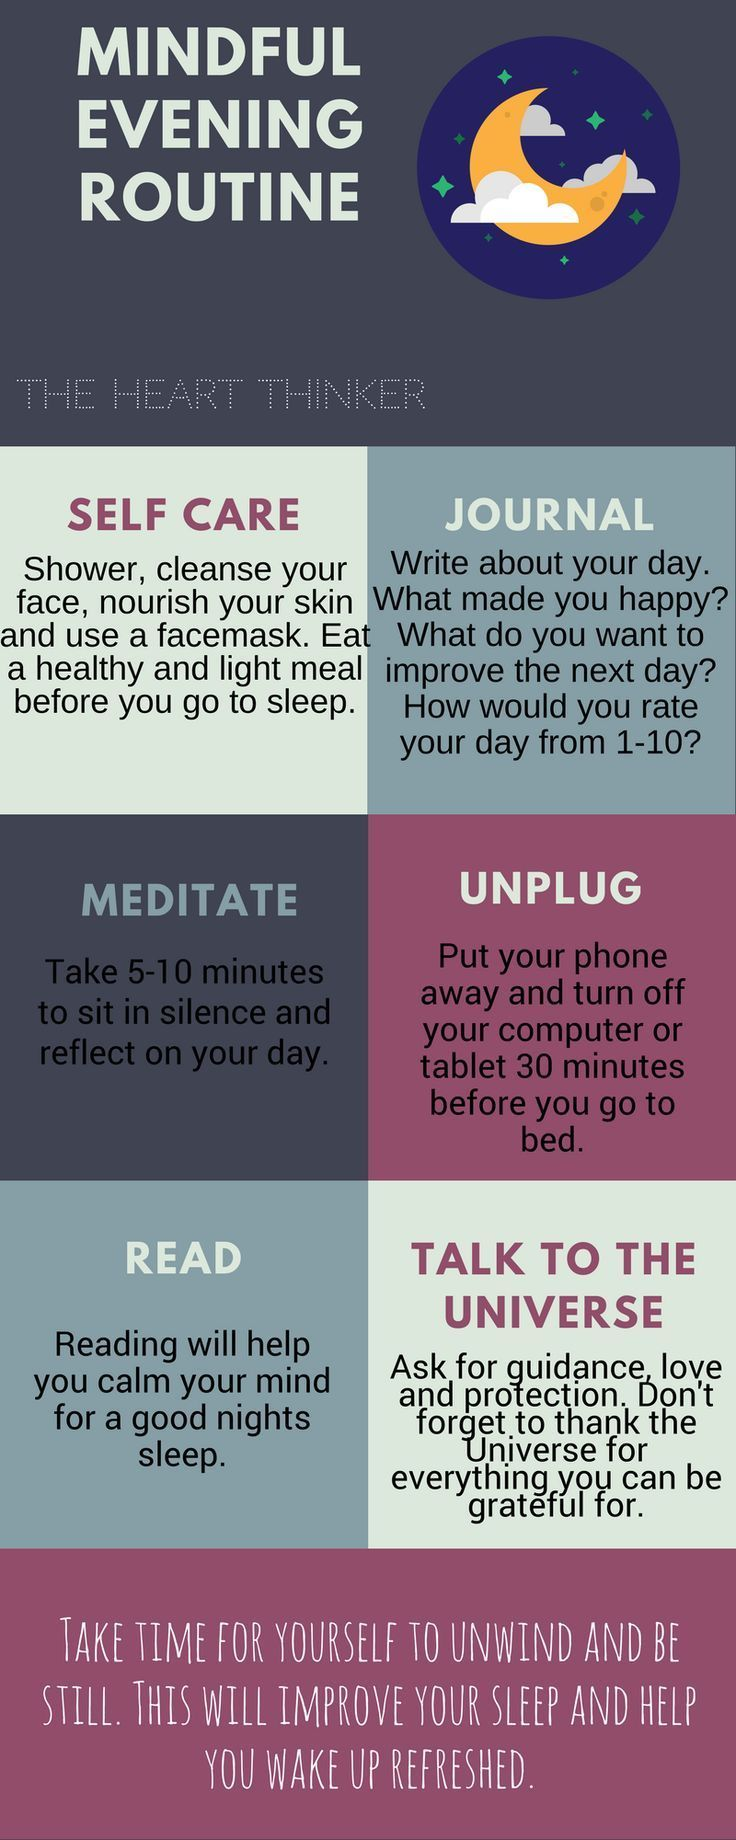 301 Meditation Quotes To Inspire Your Practice Evening Routine